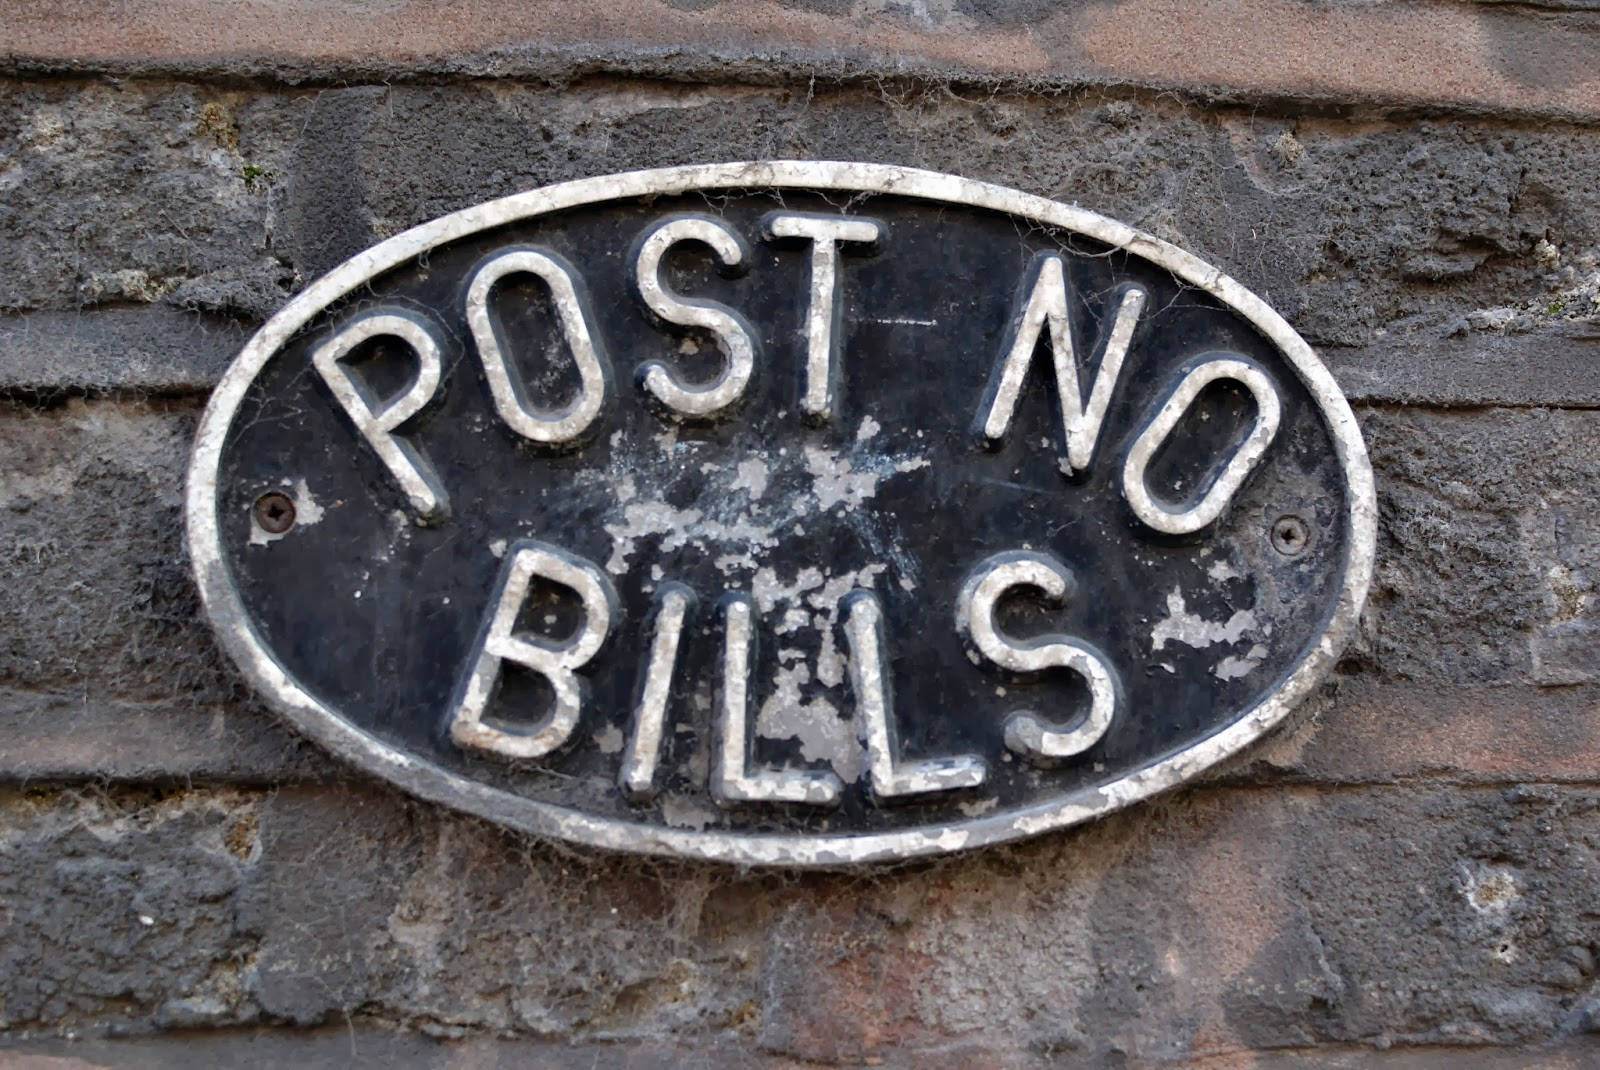 post no bills, street sign, Details, exploring city, close up photography, manchester, urbex, ephemera, urban narrative